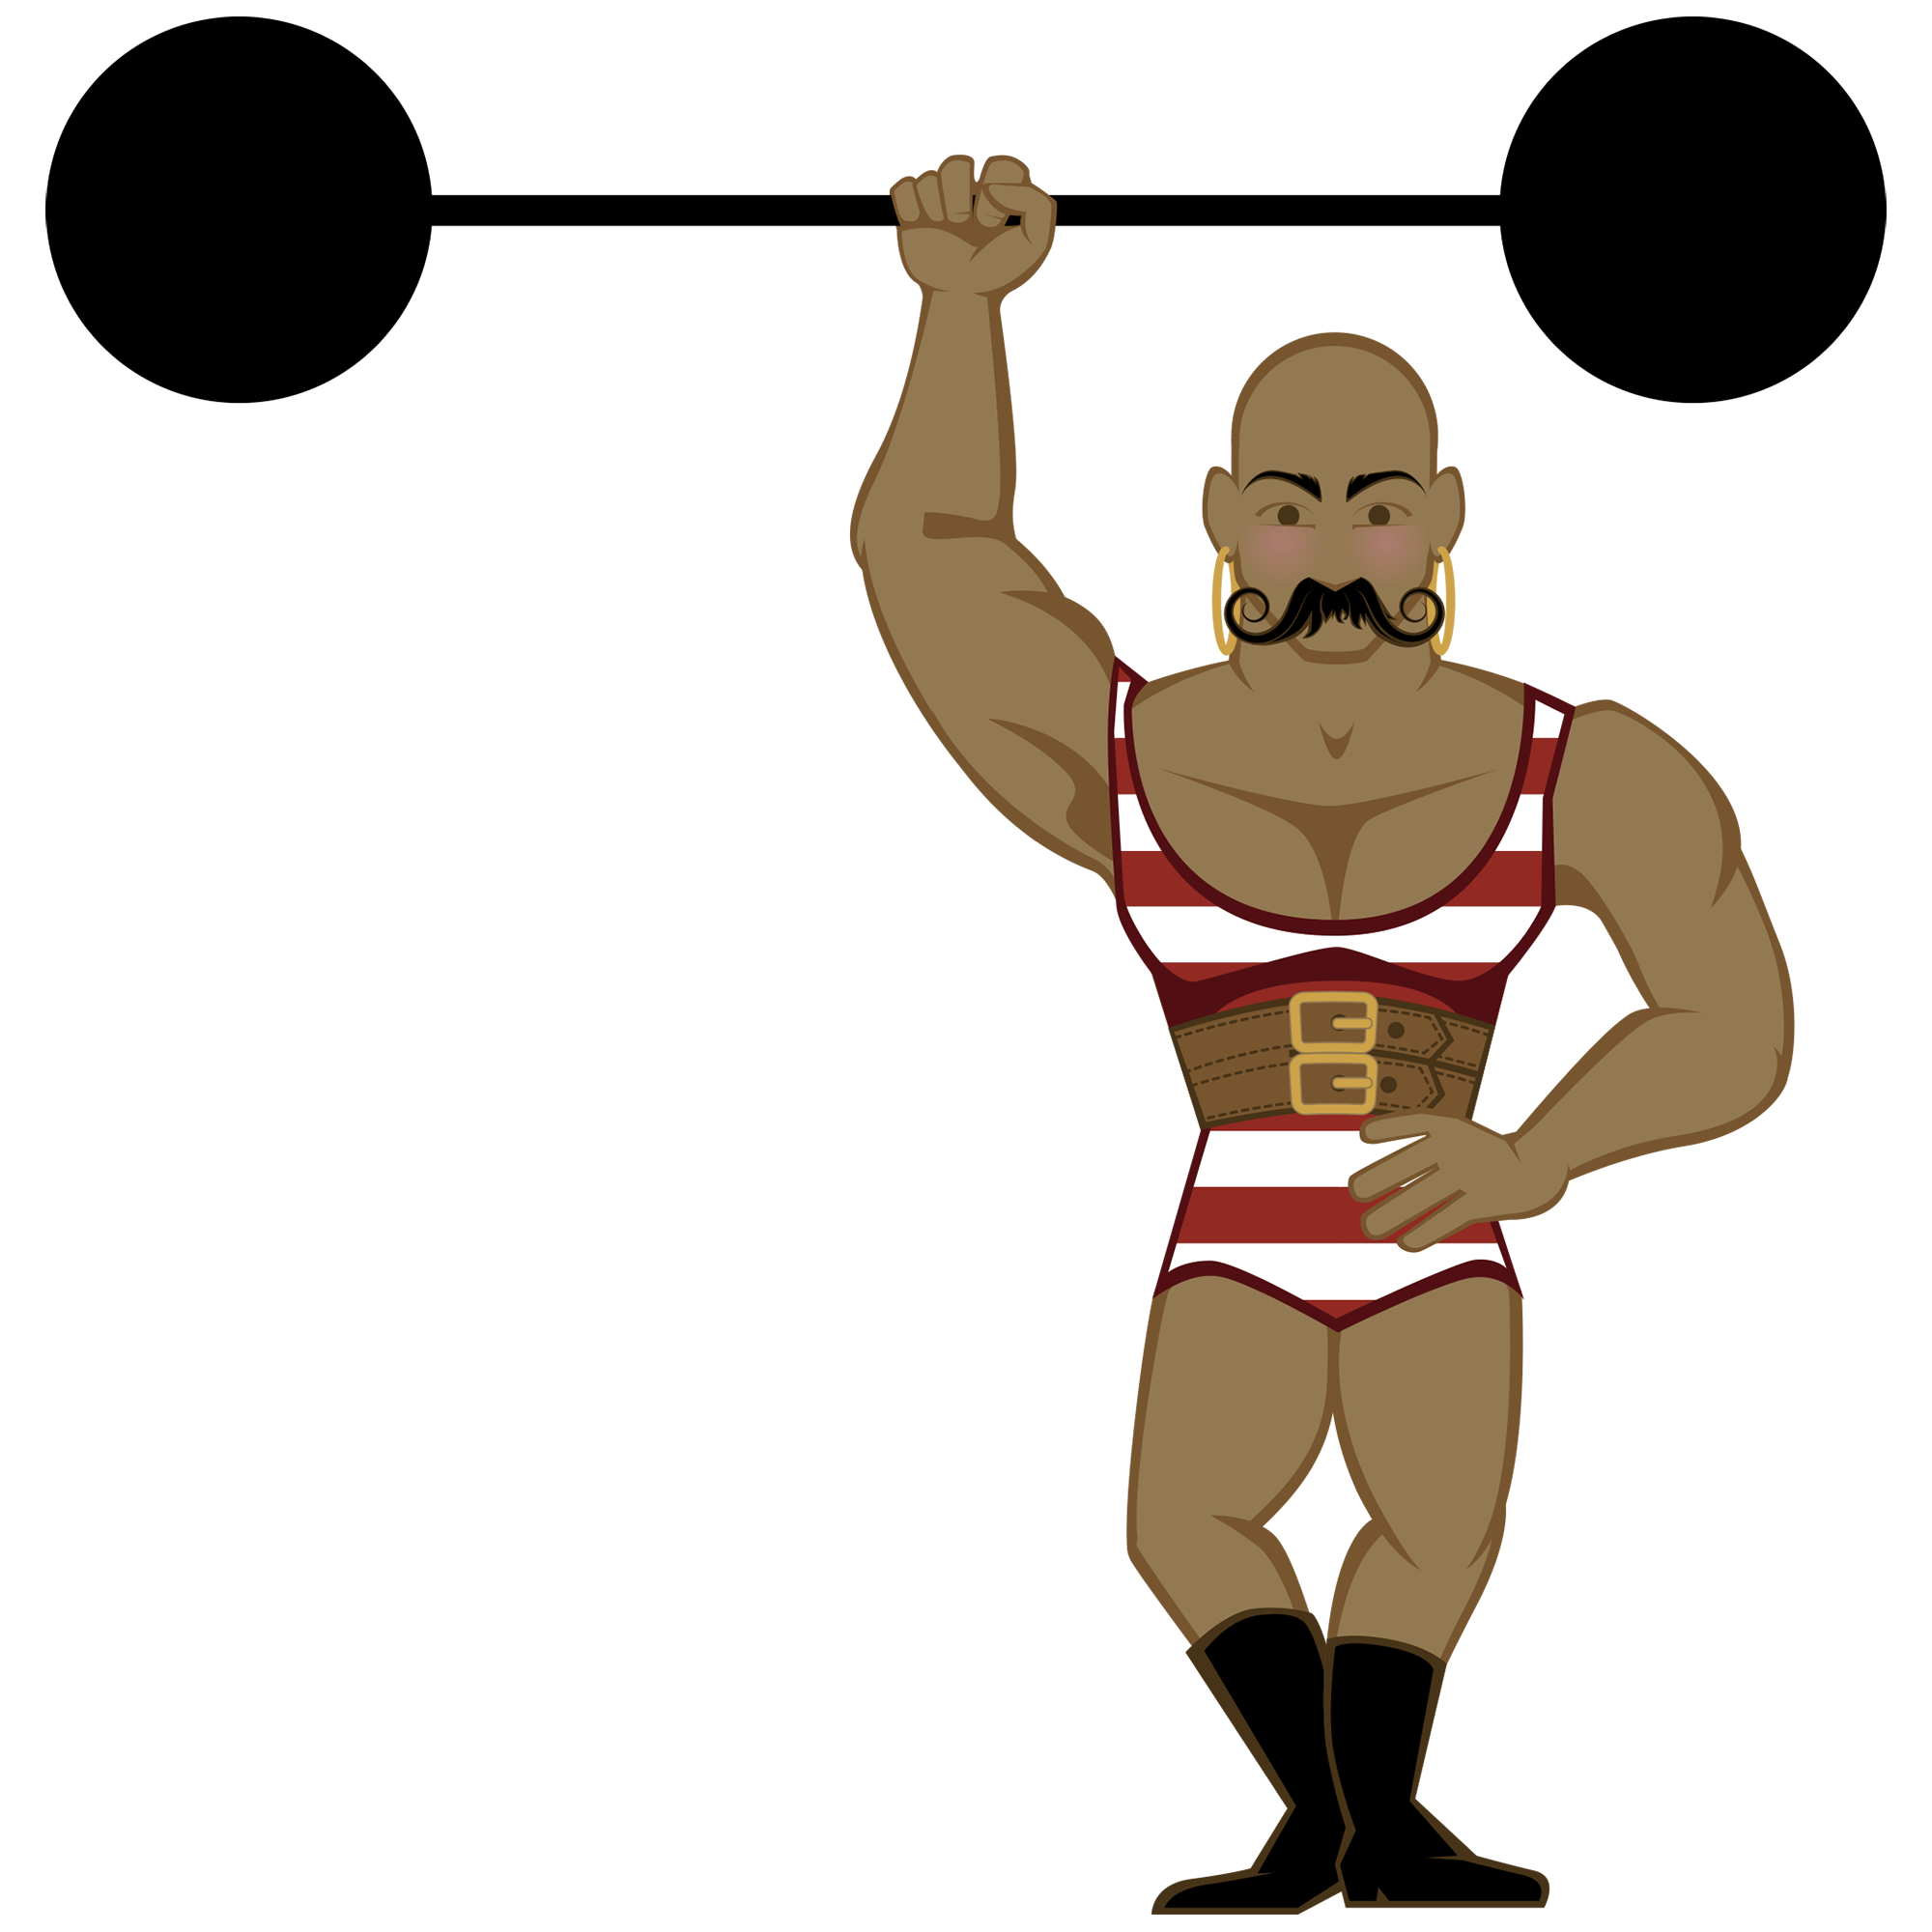 Weight clipart drawn. Circus weightlifter pencil and